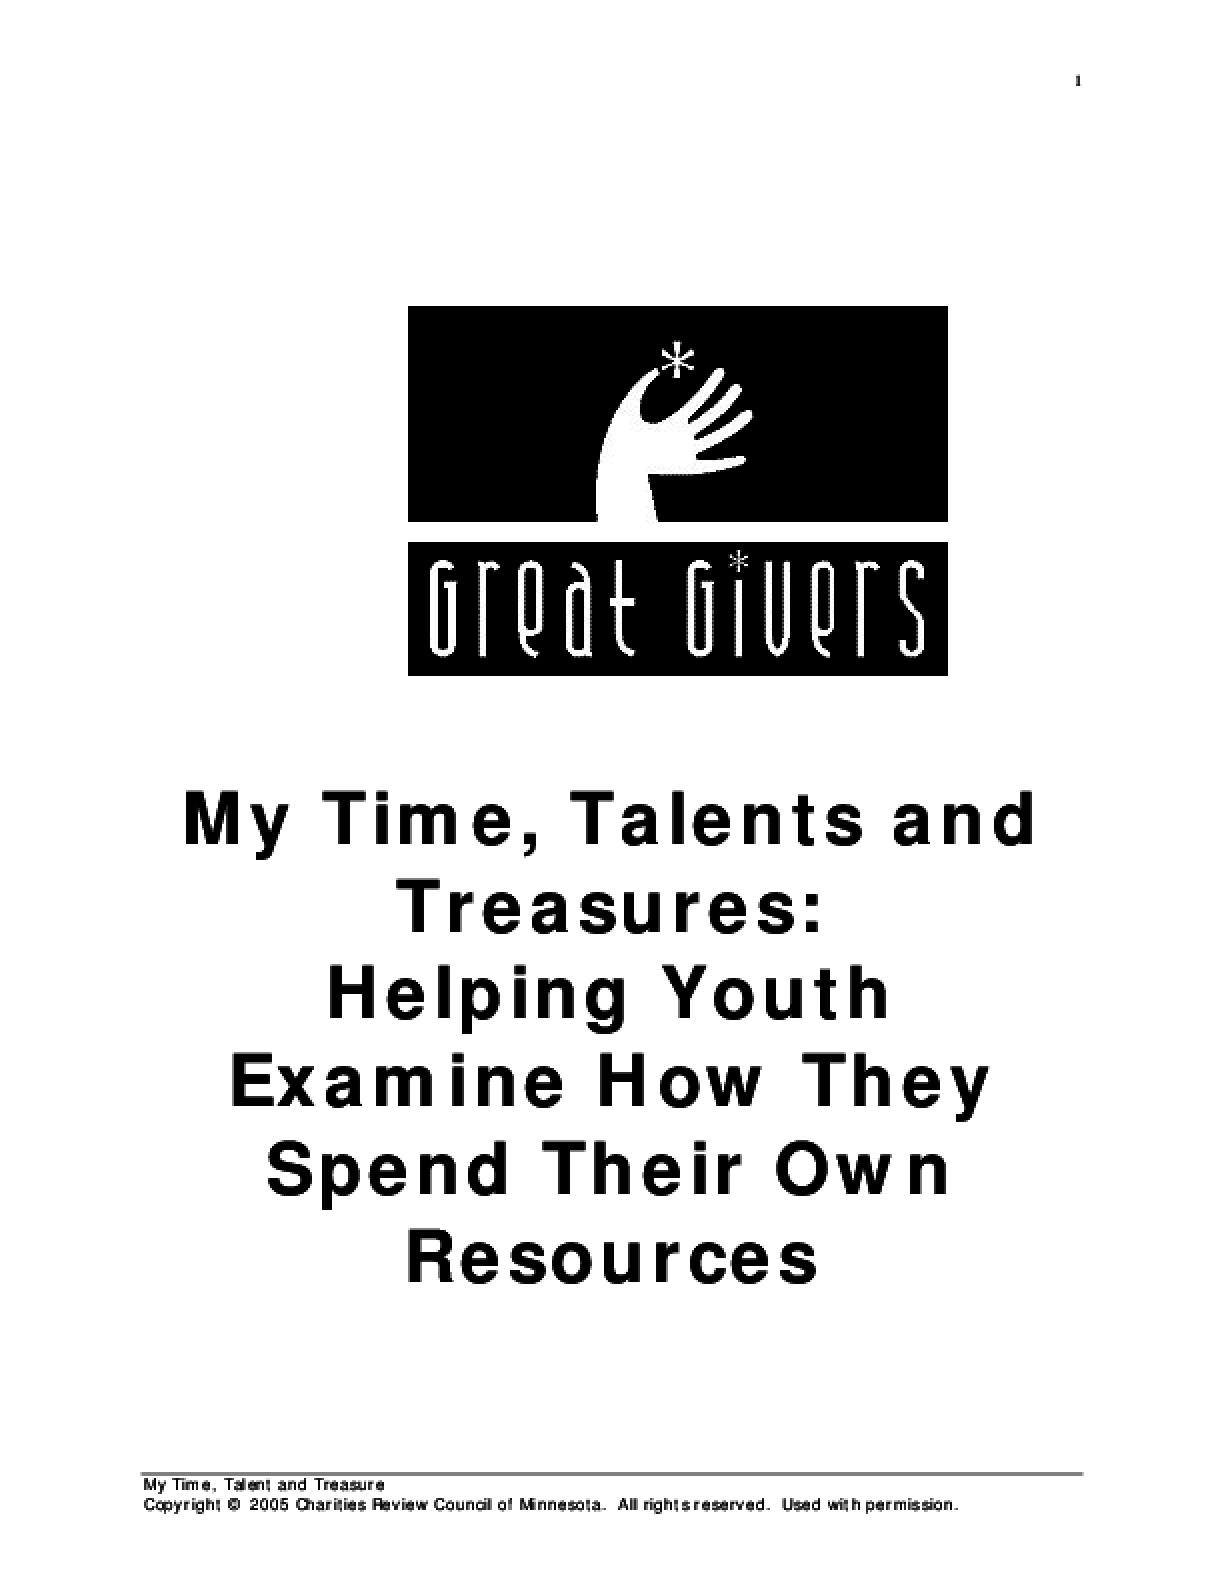 My Time, Talents and Treasures: Helping Youth Examine How They Spend Their Own Resources